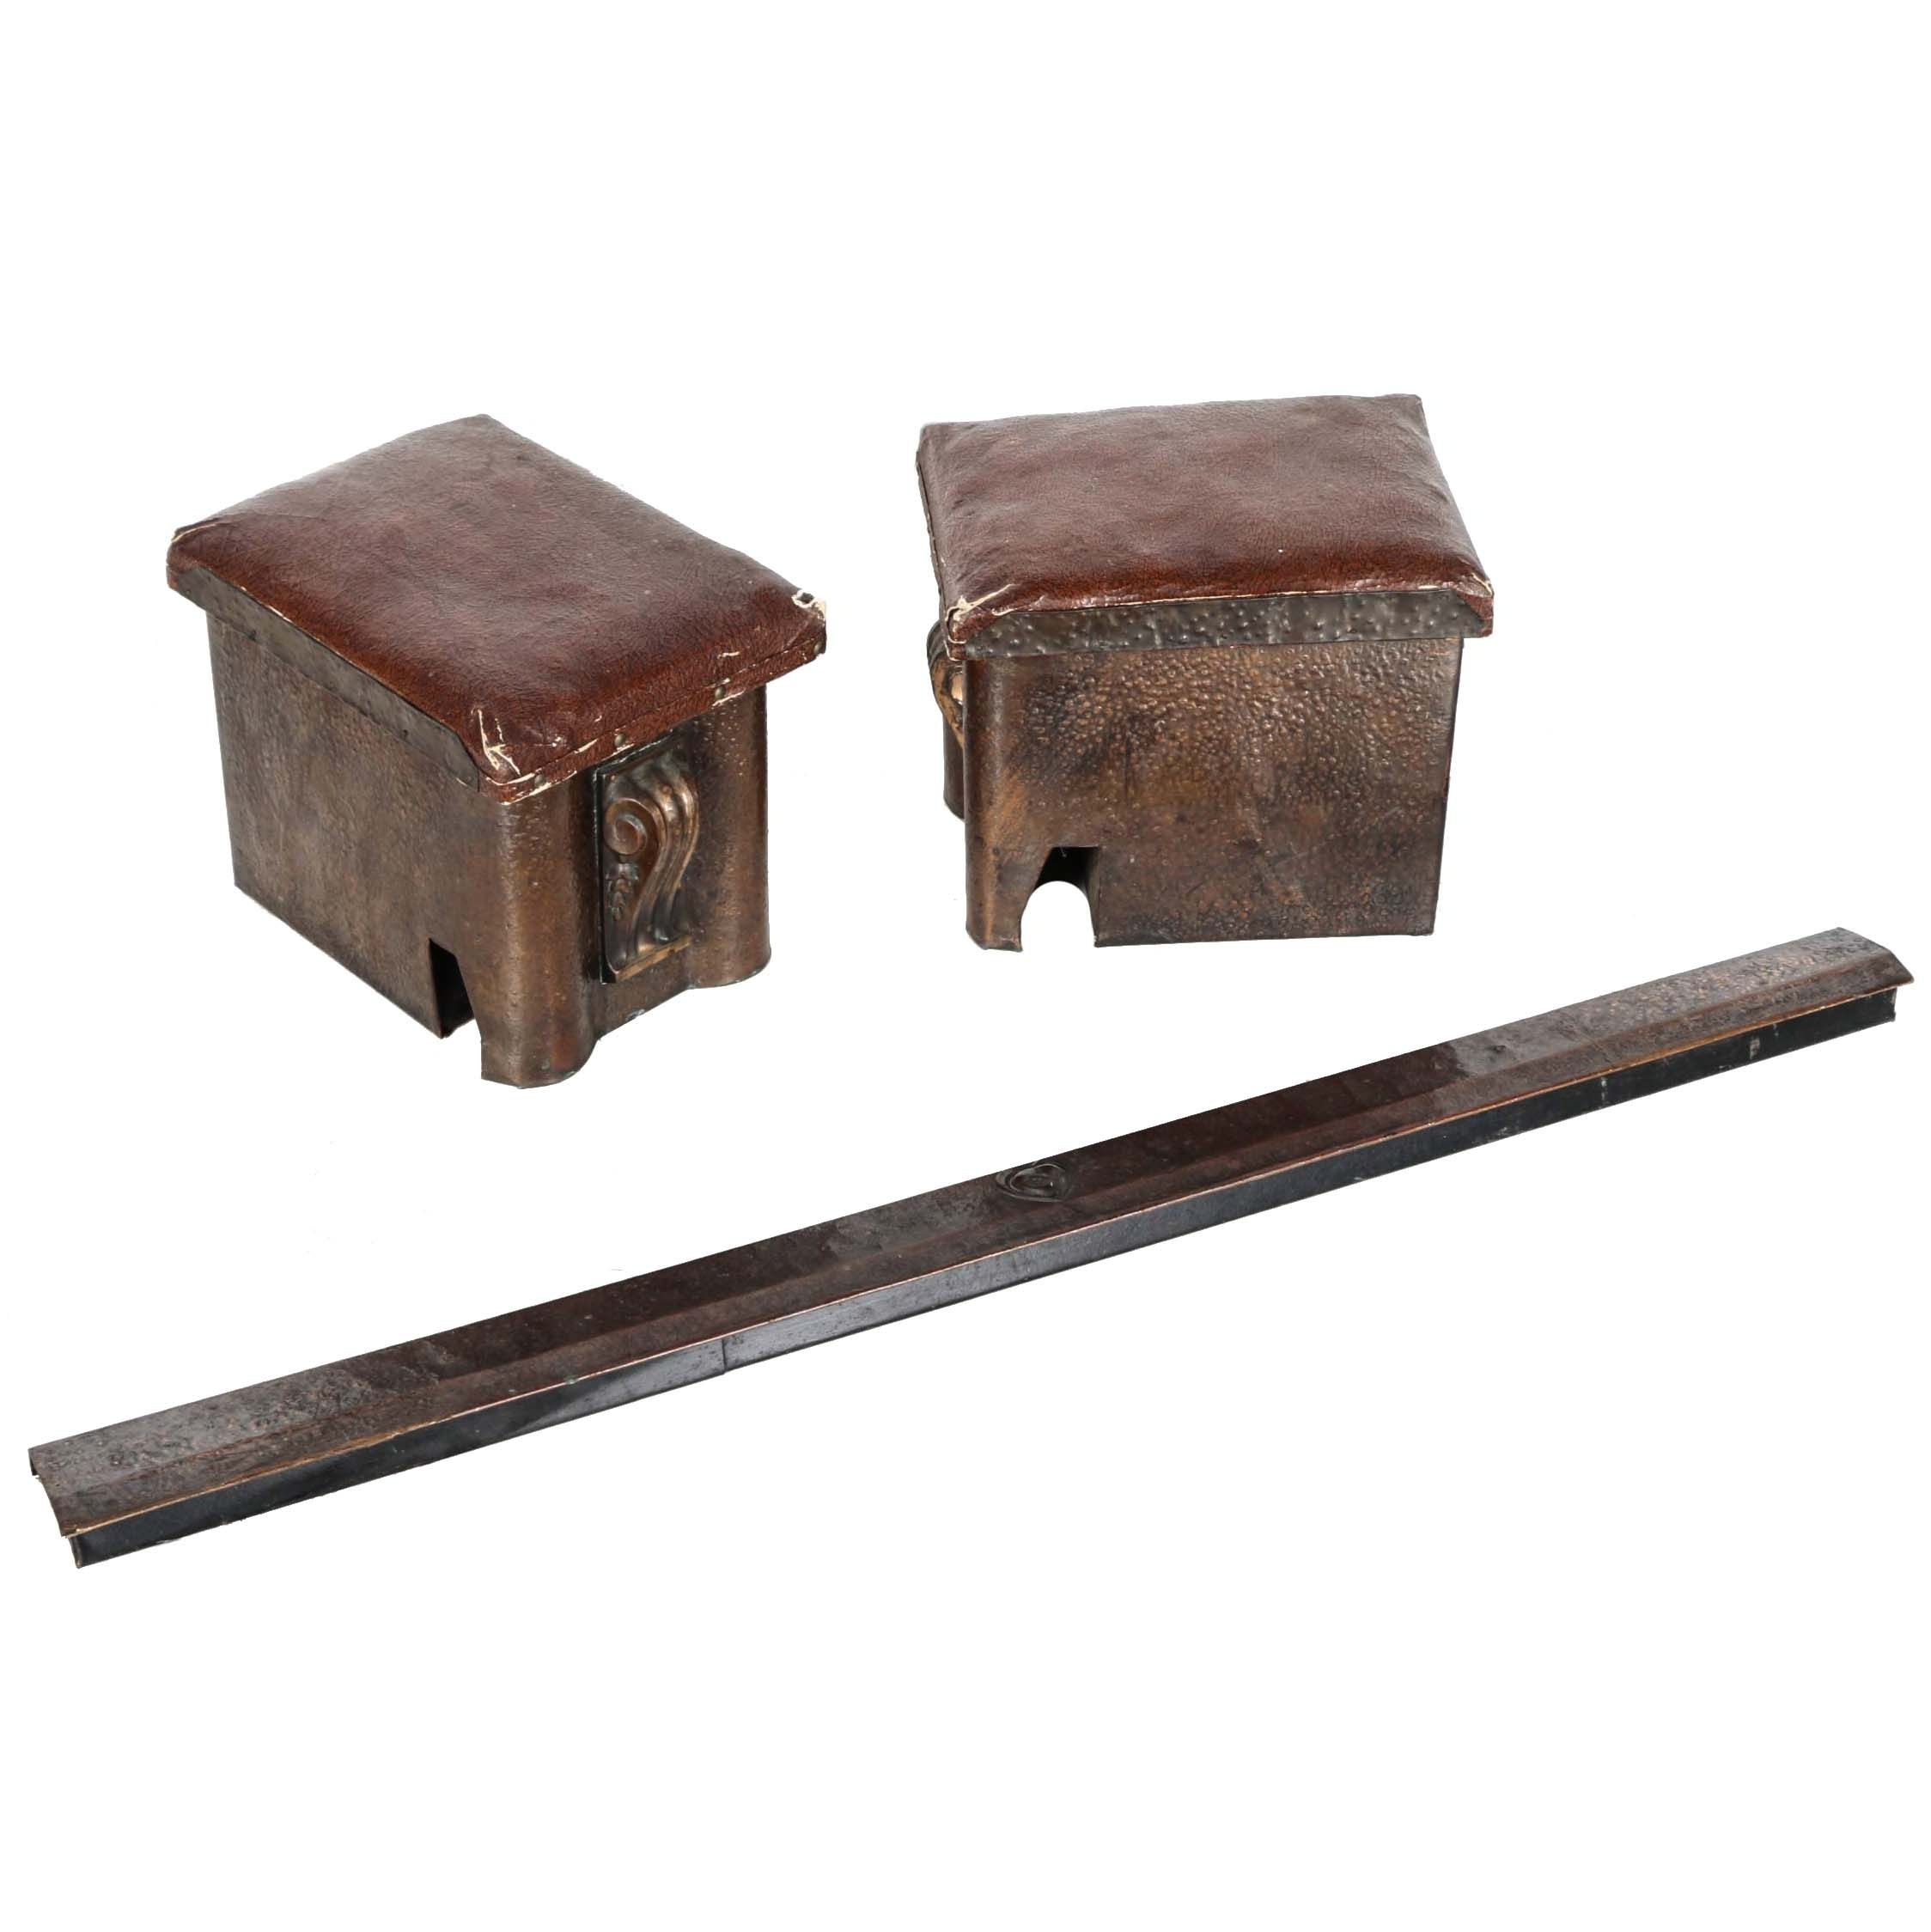 Antique Fireplace Fender With Kindling Boxes